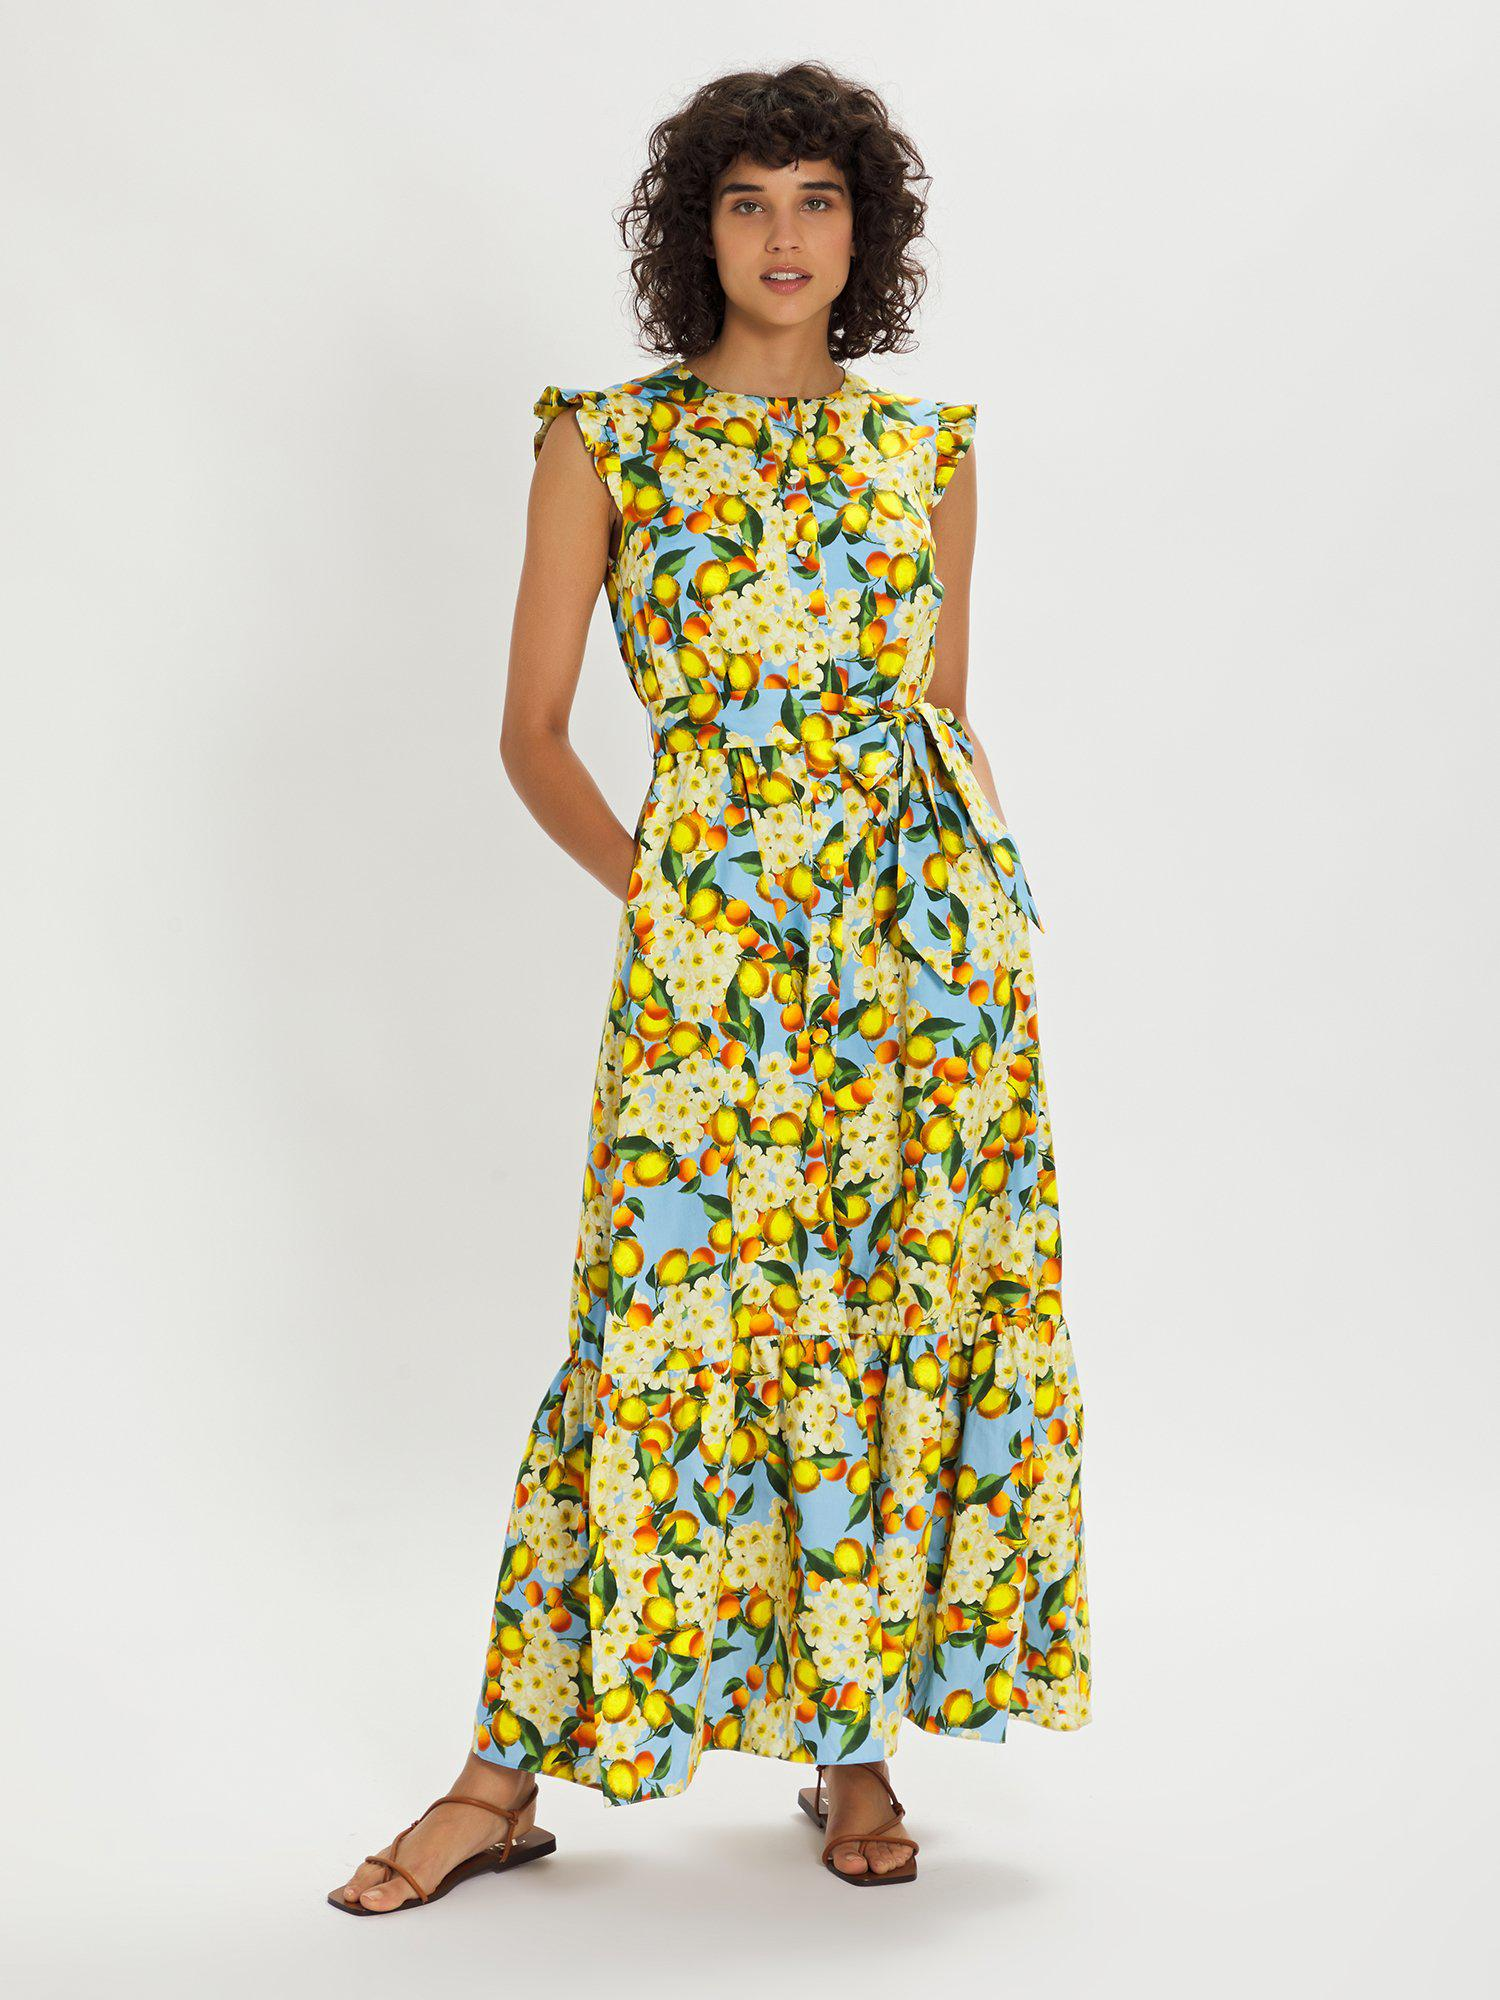 GABRIELLE YELLOW AND BLUE FLORAL MAXI DRESS